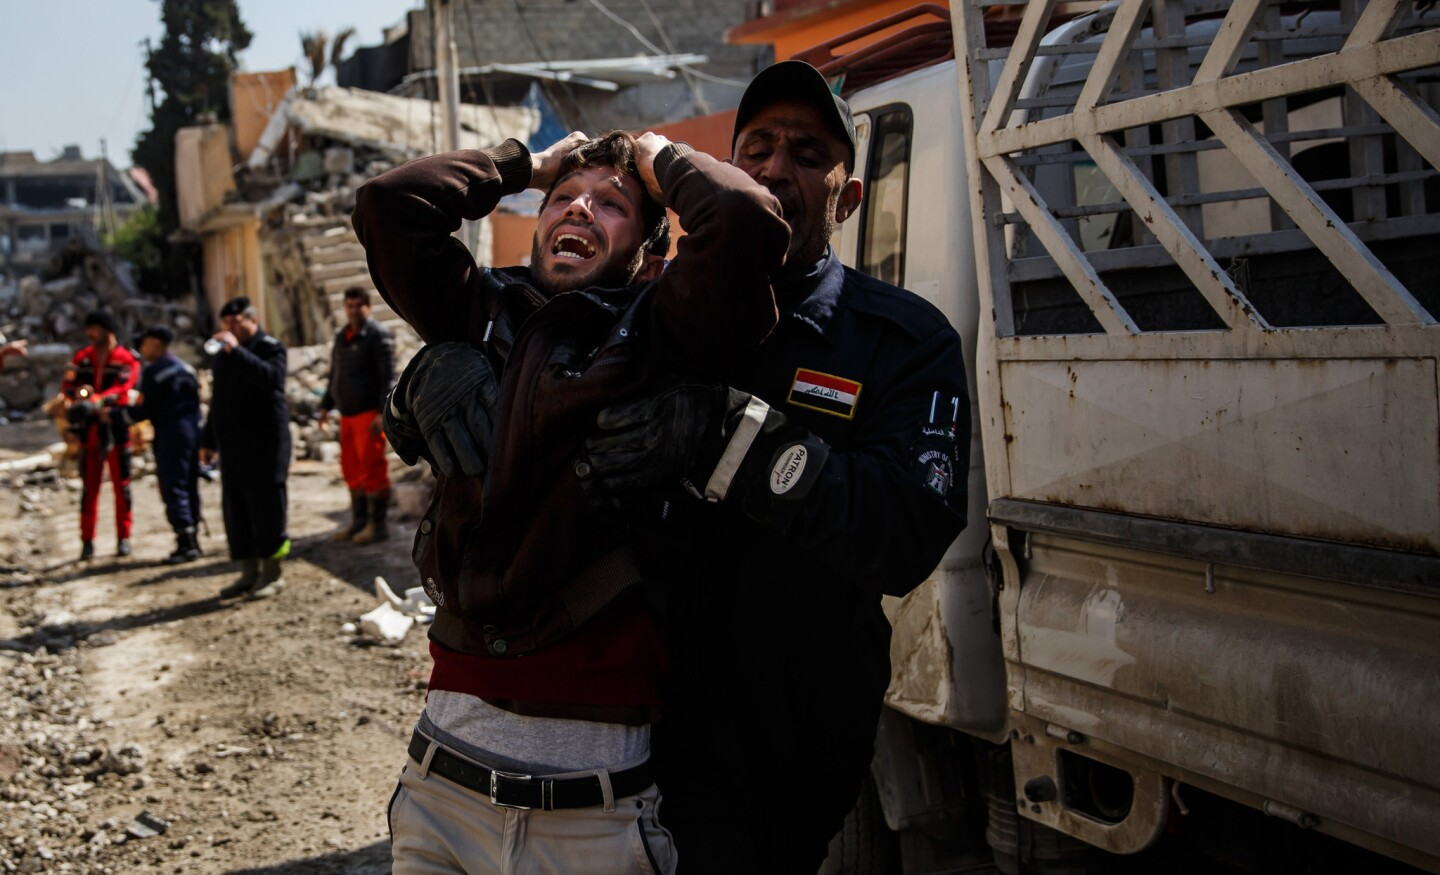 A man overcome with grief cries out as he is escorted away after finding a loved one dead amid the rubble of a destroyed home following an airstrike in Mosul, Iraq.